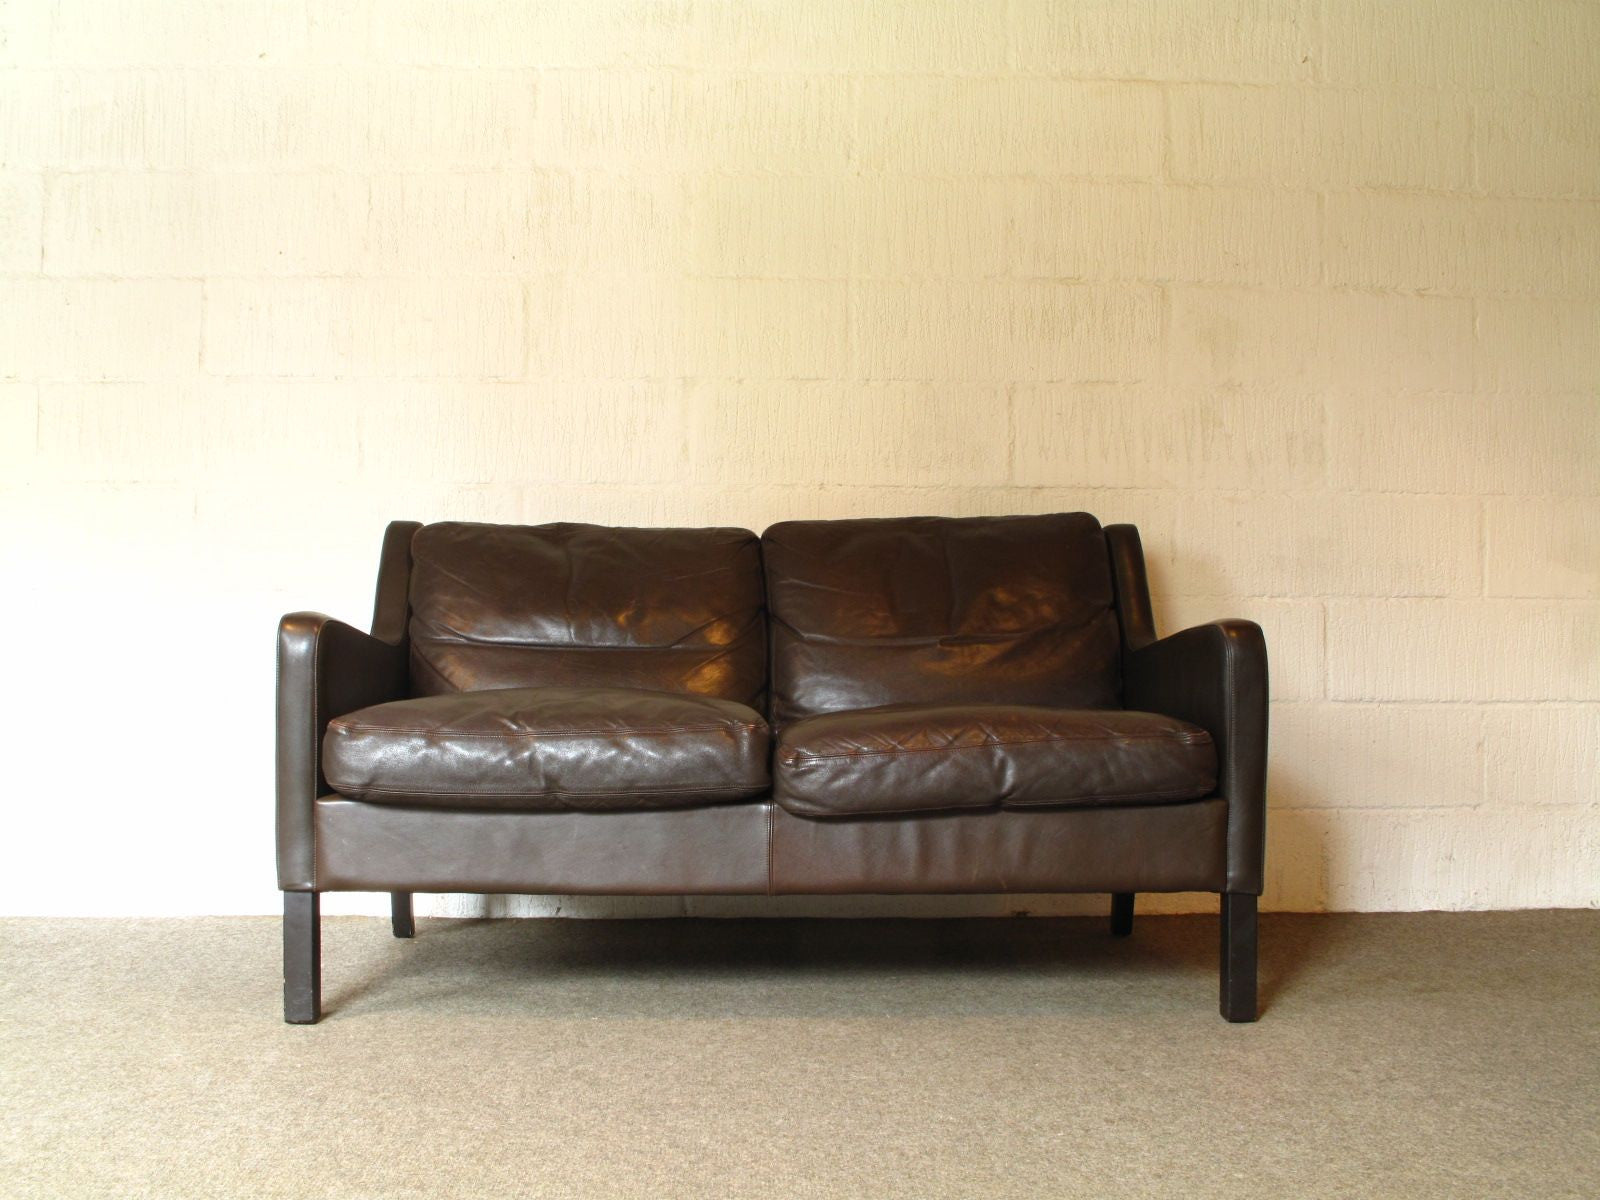 Chase & Sorensen Two seat leather sofa by G. Thams